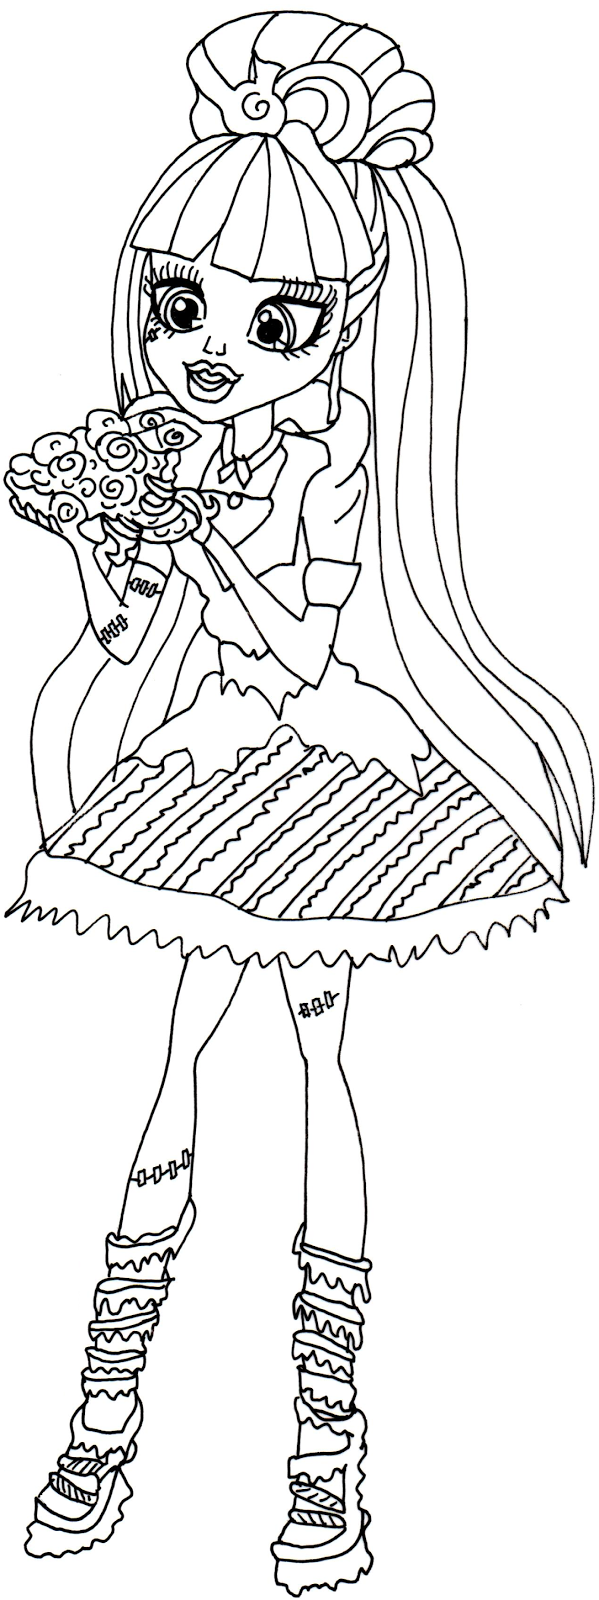 free printable sweet coloring pages - photo#13